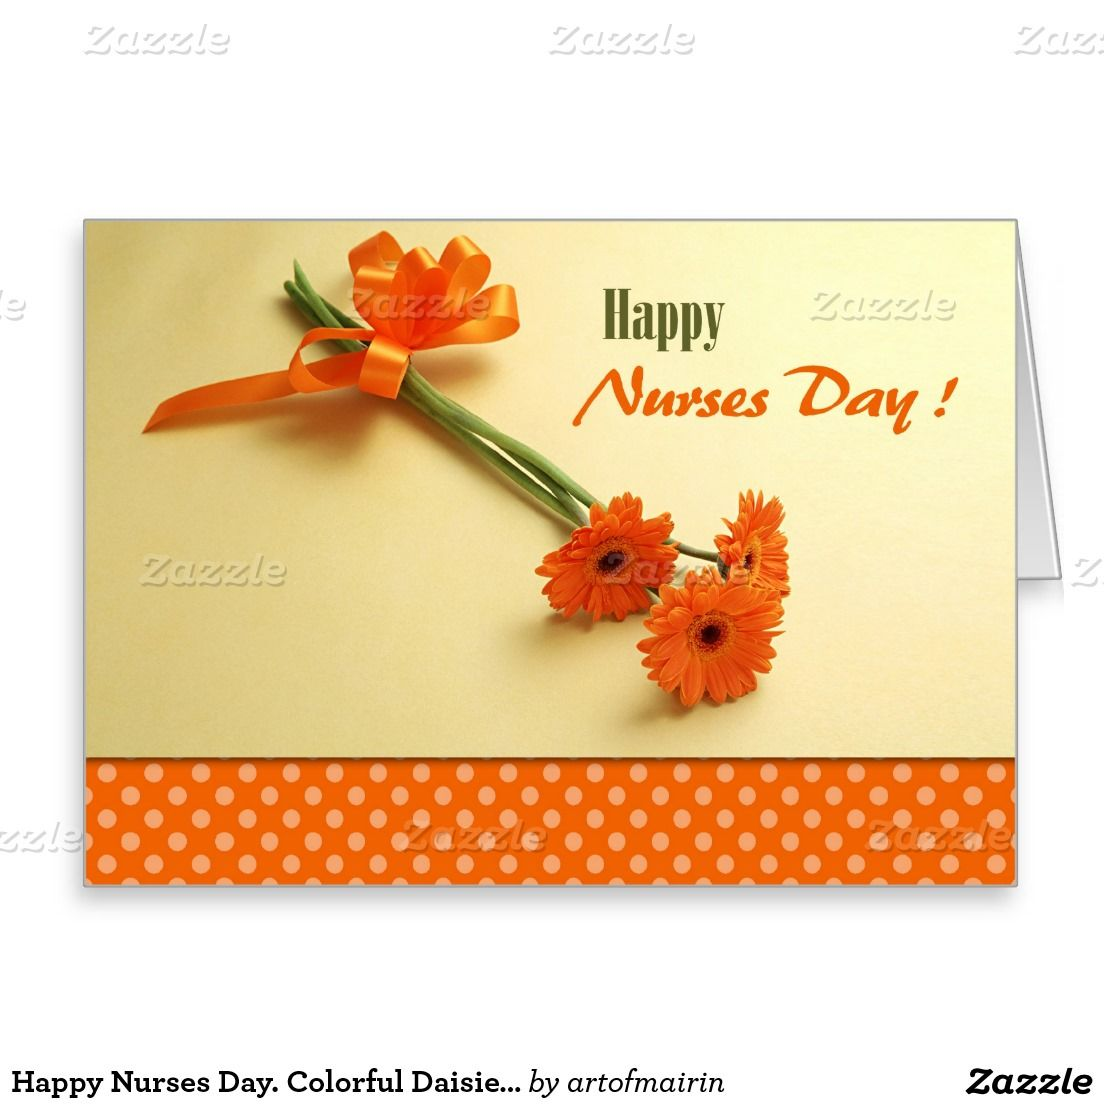 Happy nurses day colorful daisies greeting cards m4hsunfo Image collections